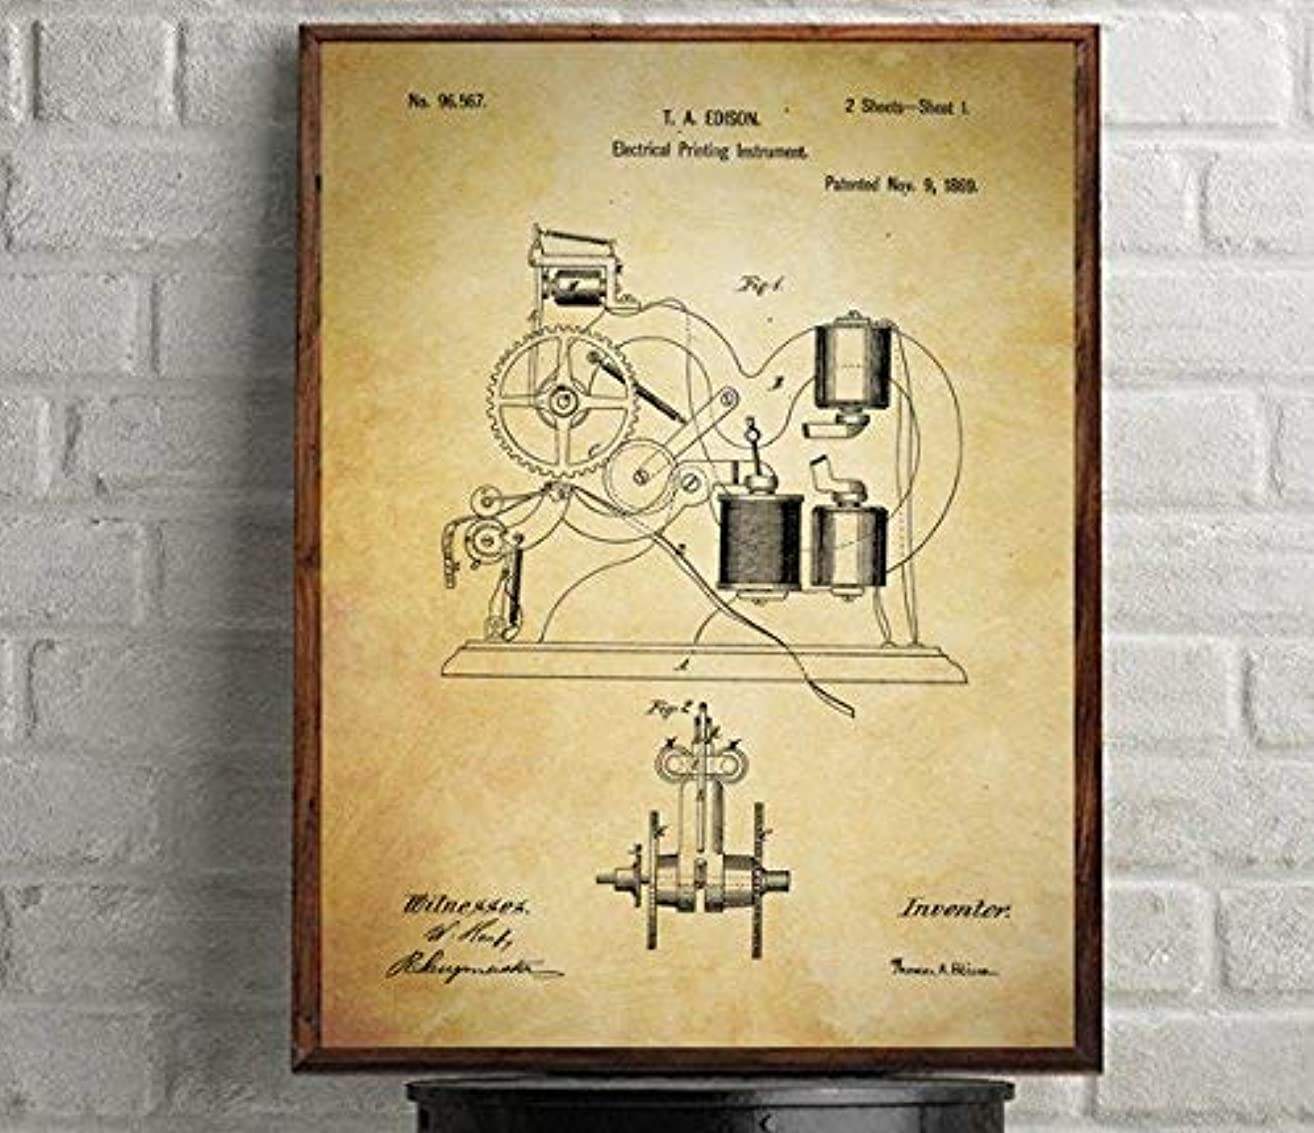 Stock Market Ticker Tape Patent Poster. Best gift for traders and investors